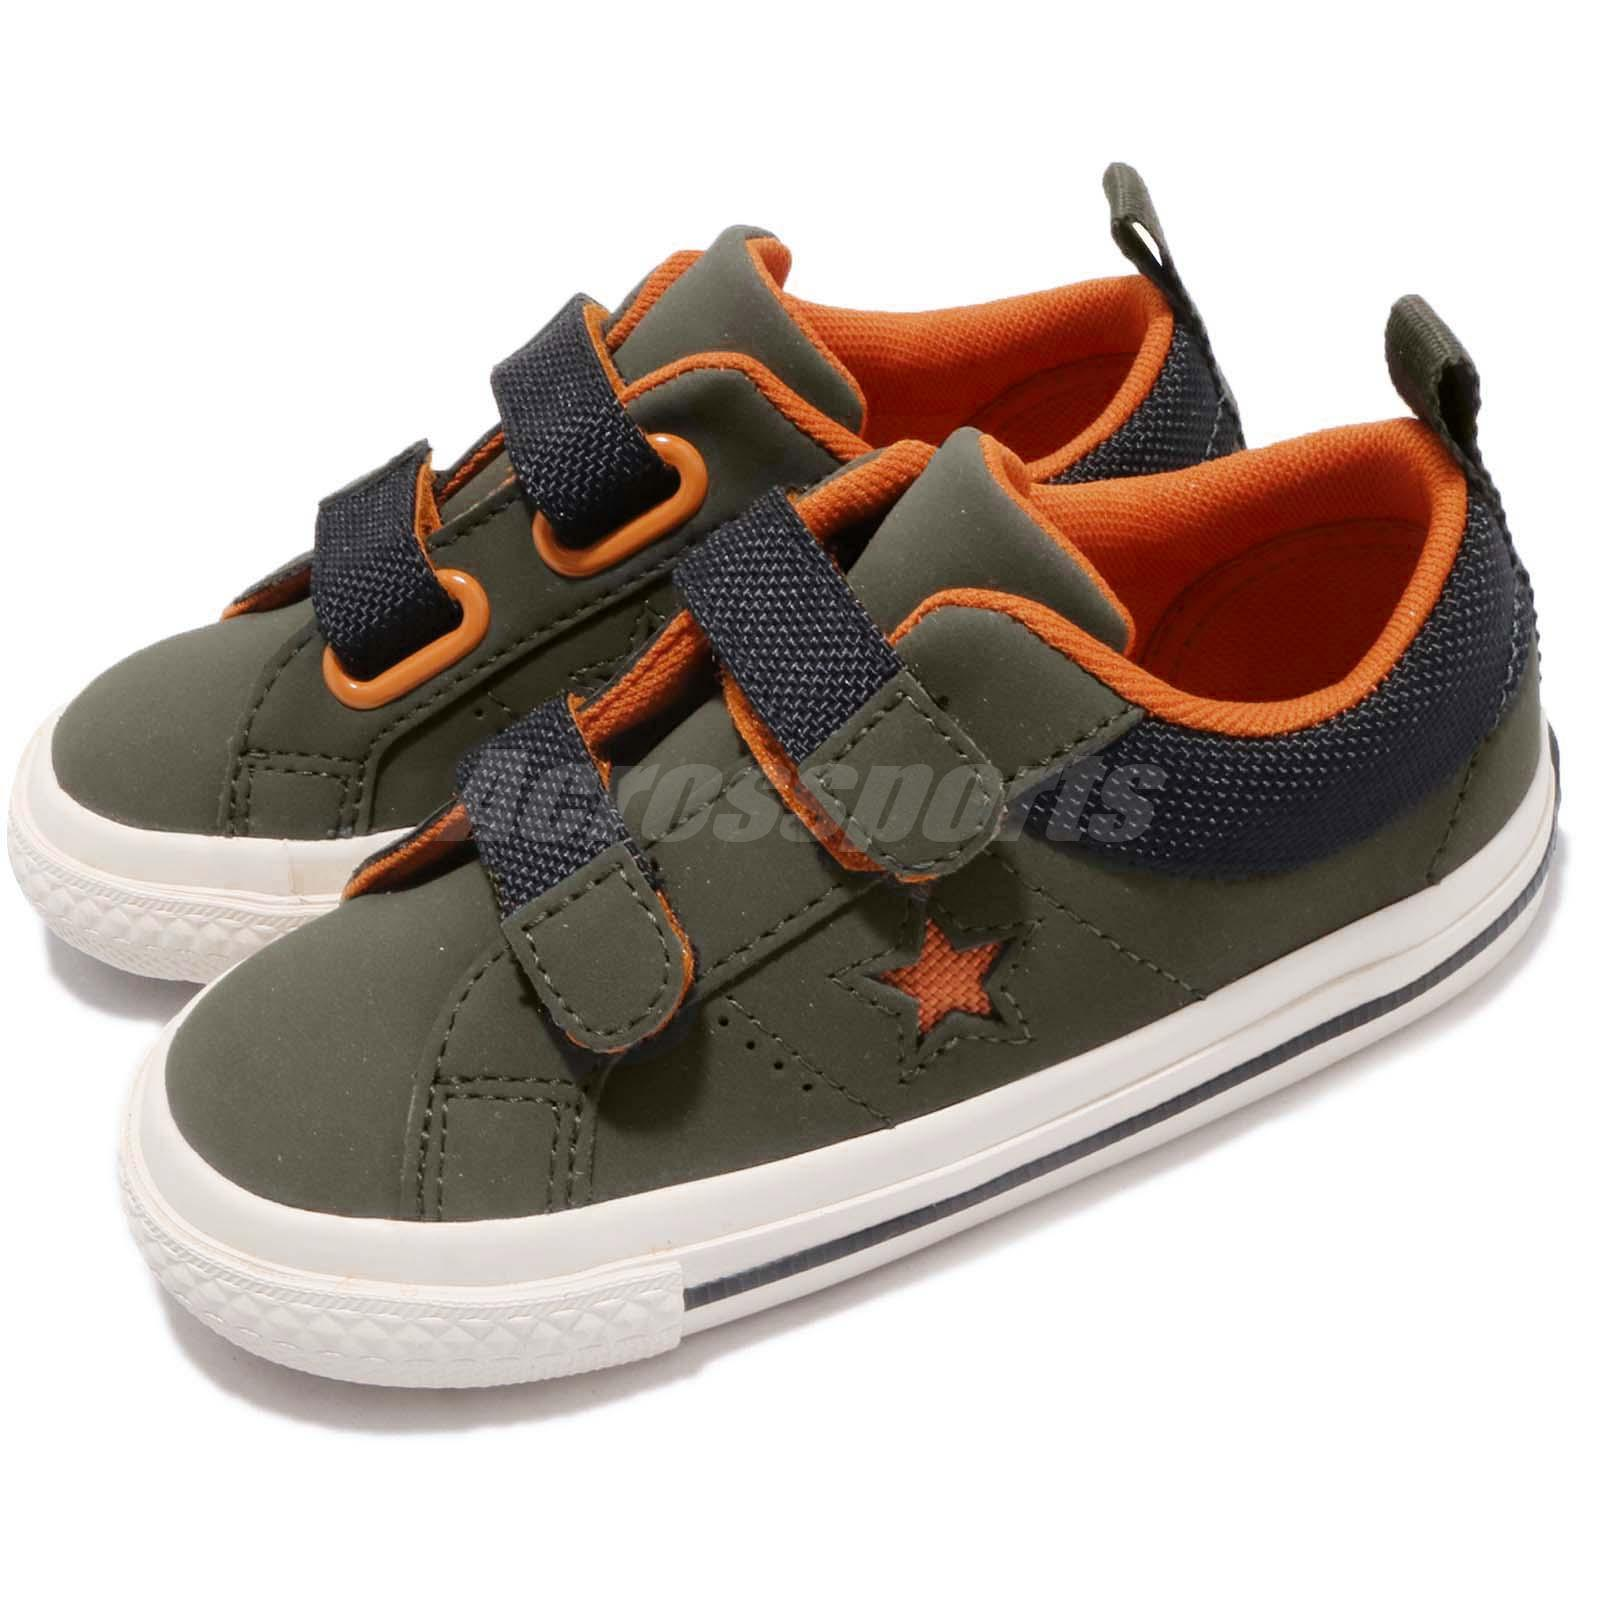 089ee9395f7055 Details about Converse One Star 2V OX Utility Green Orange TD Toddler Infant  Baby Shoe 762858C